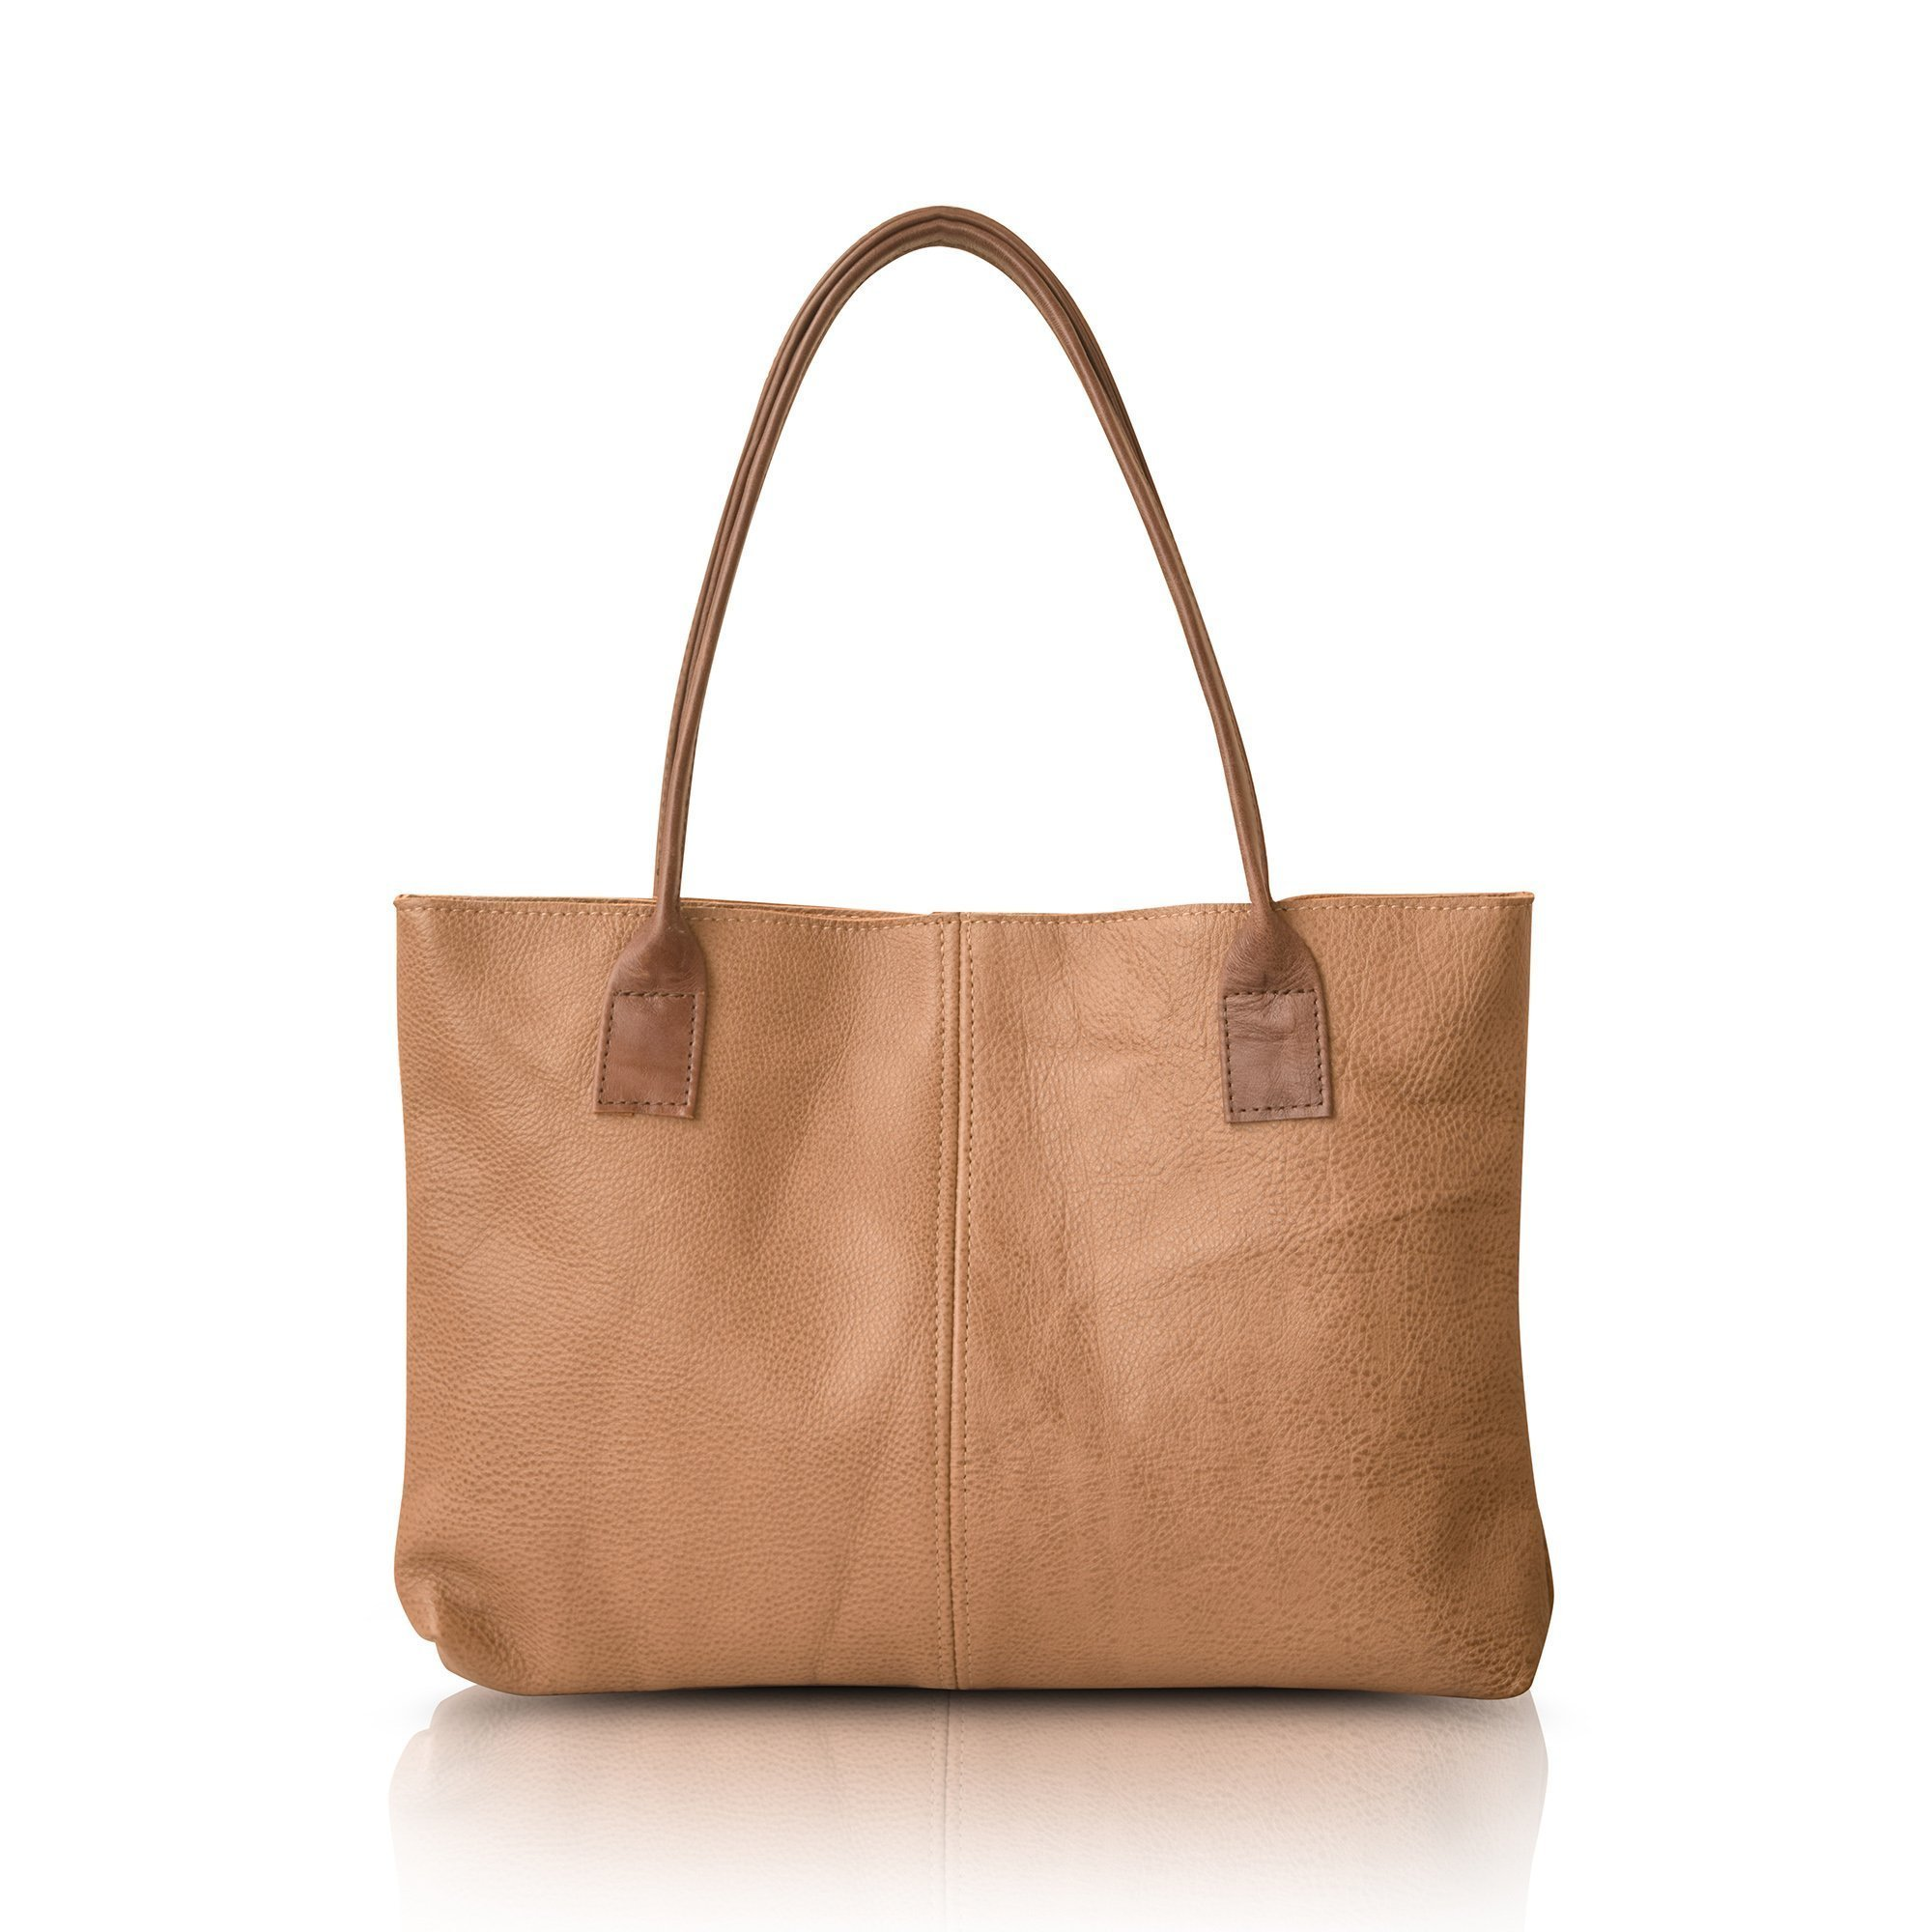 Handmade Durable Simple Everyday Women's Italian Leather Tote Shoulder Bag / Medium Size Leather Work Bag brown